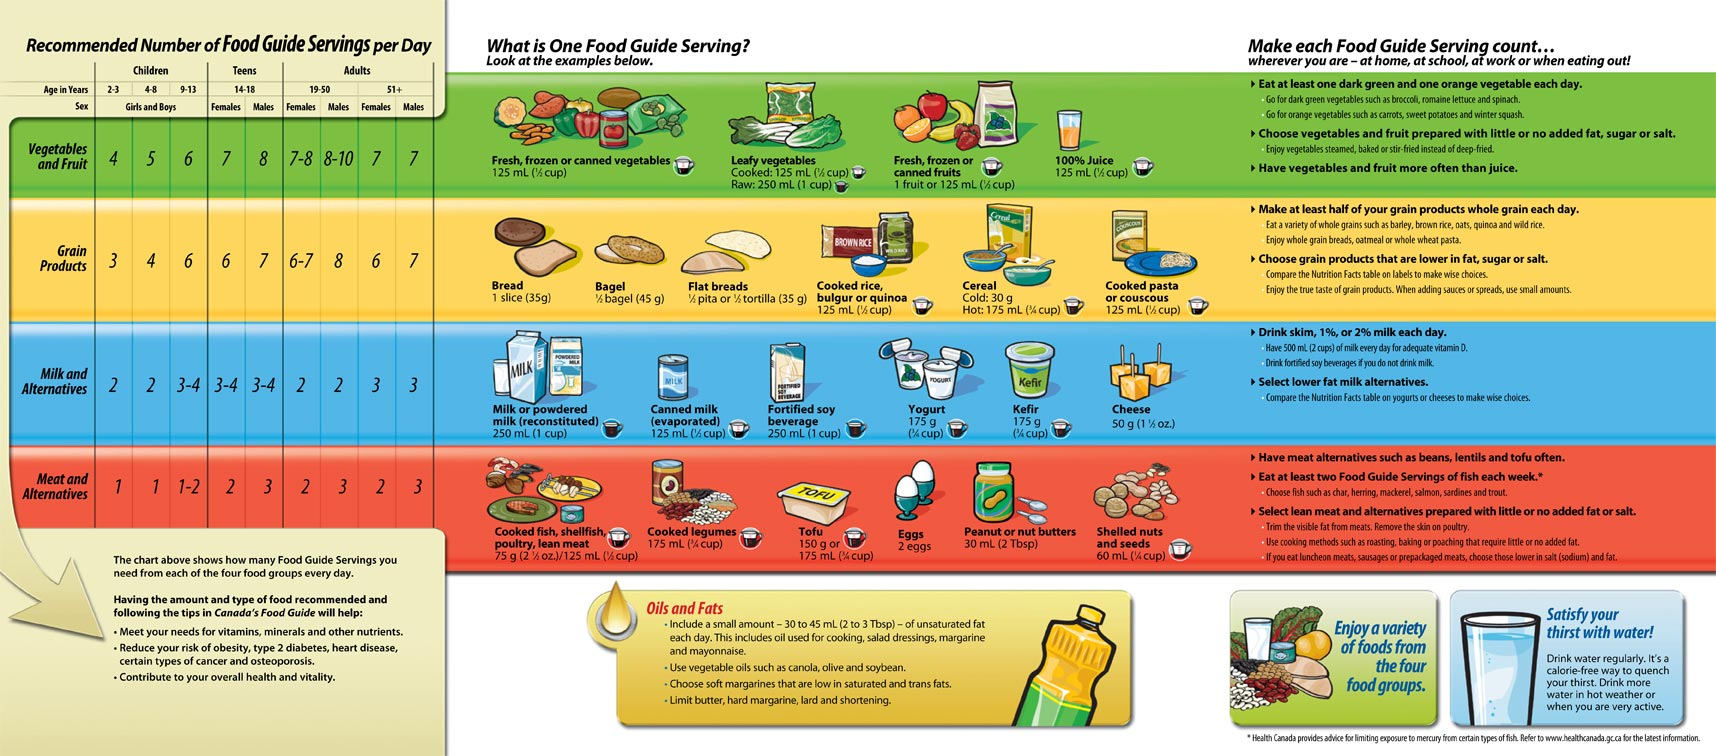 Canada Food Guide 2012 side 02.jpg